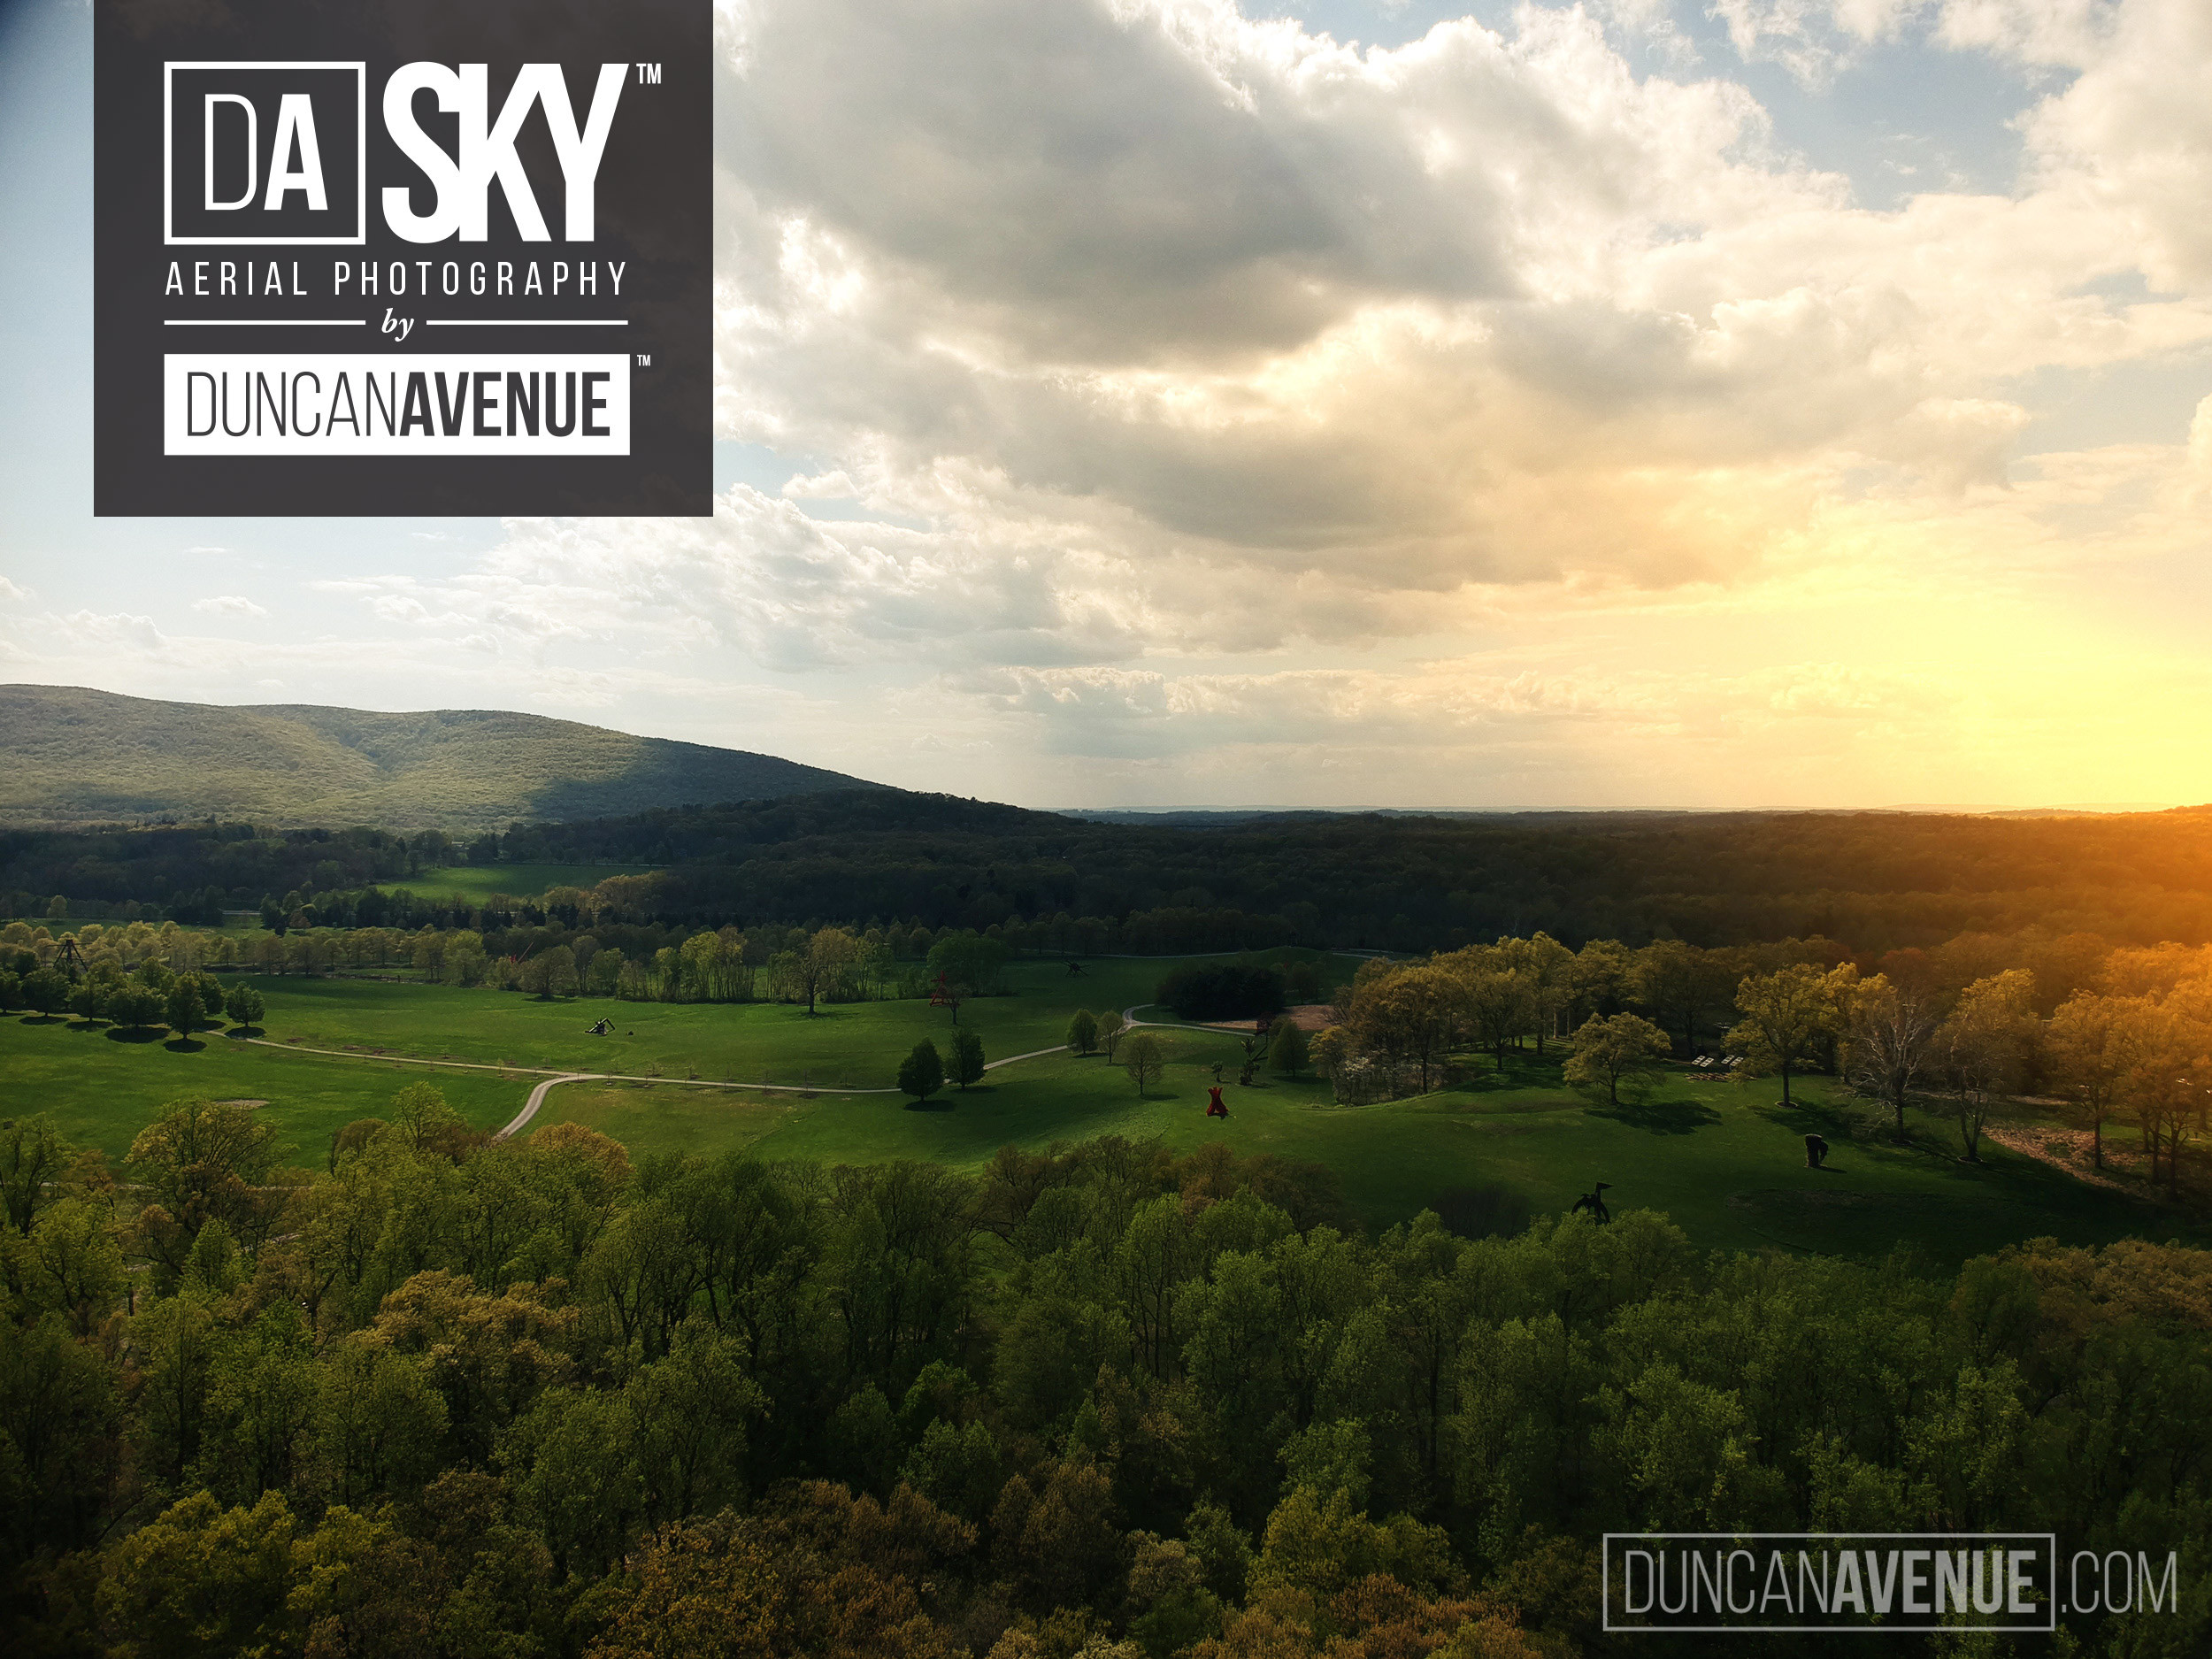 Hudson Valley Aerial Photography by Maxwell Alexander / Duncan Avenue Group